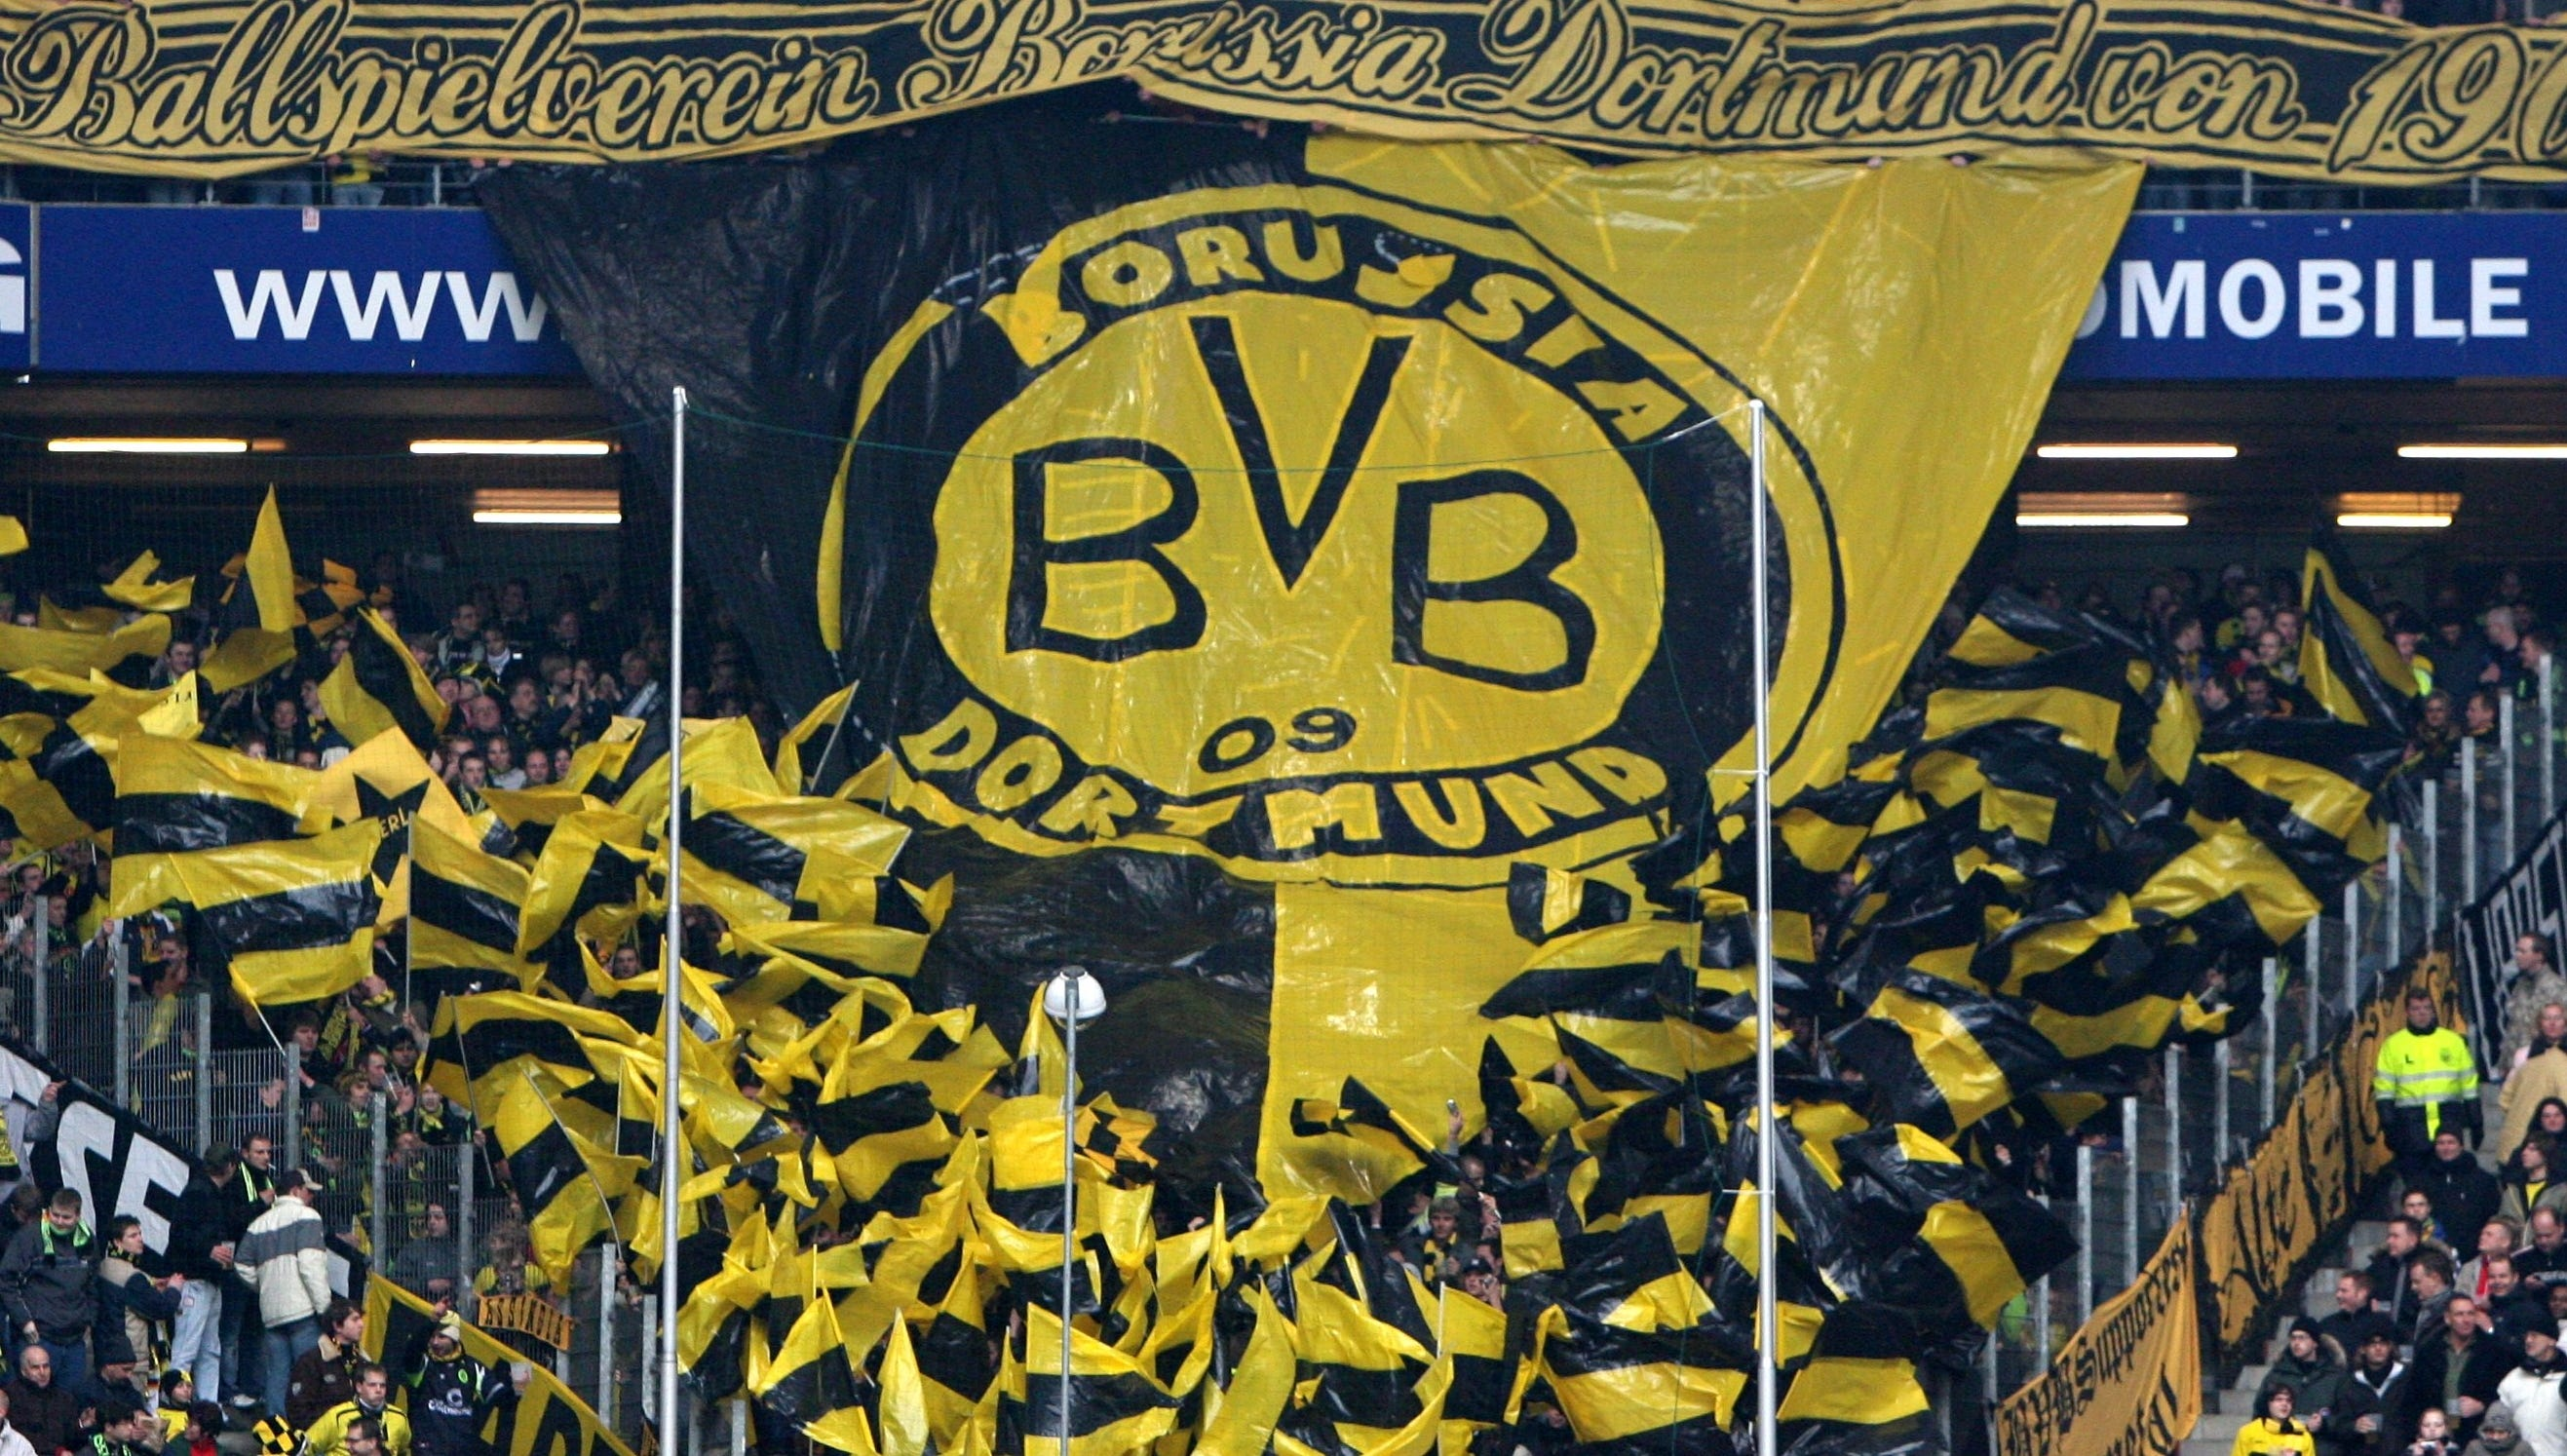 Borussia Dortmund Deals With Surge In Neo Nazi Fan Violence